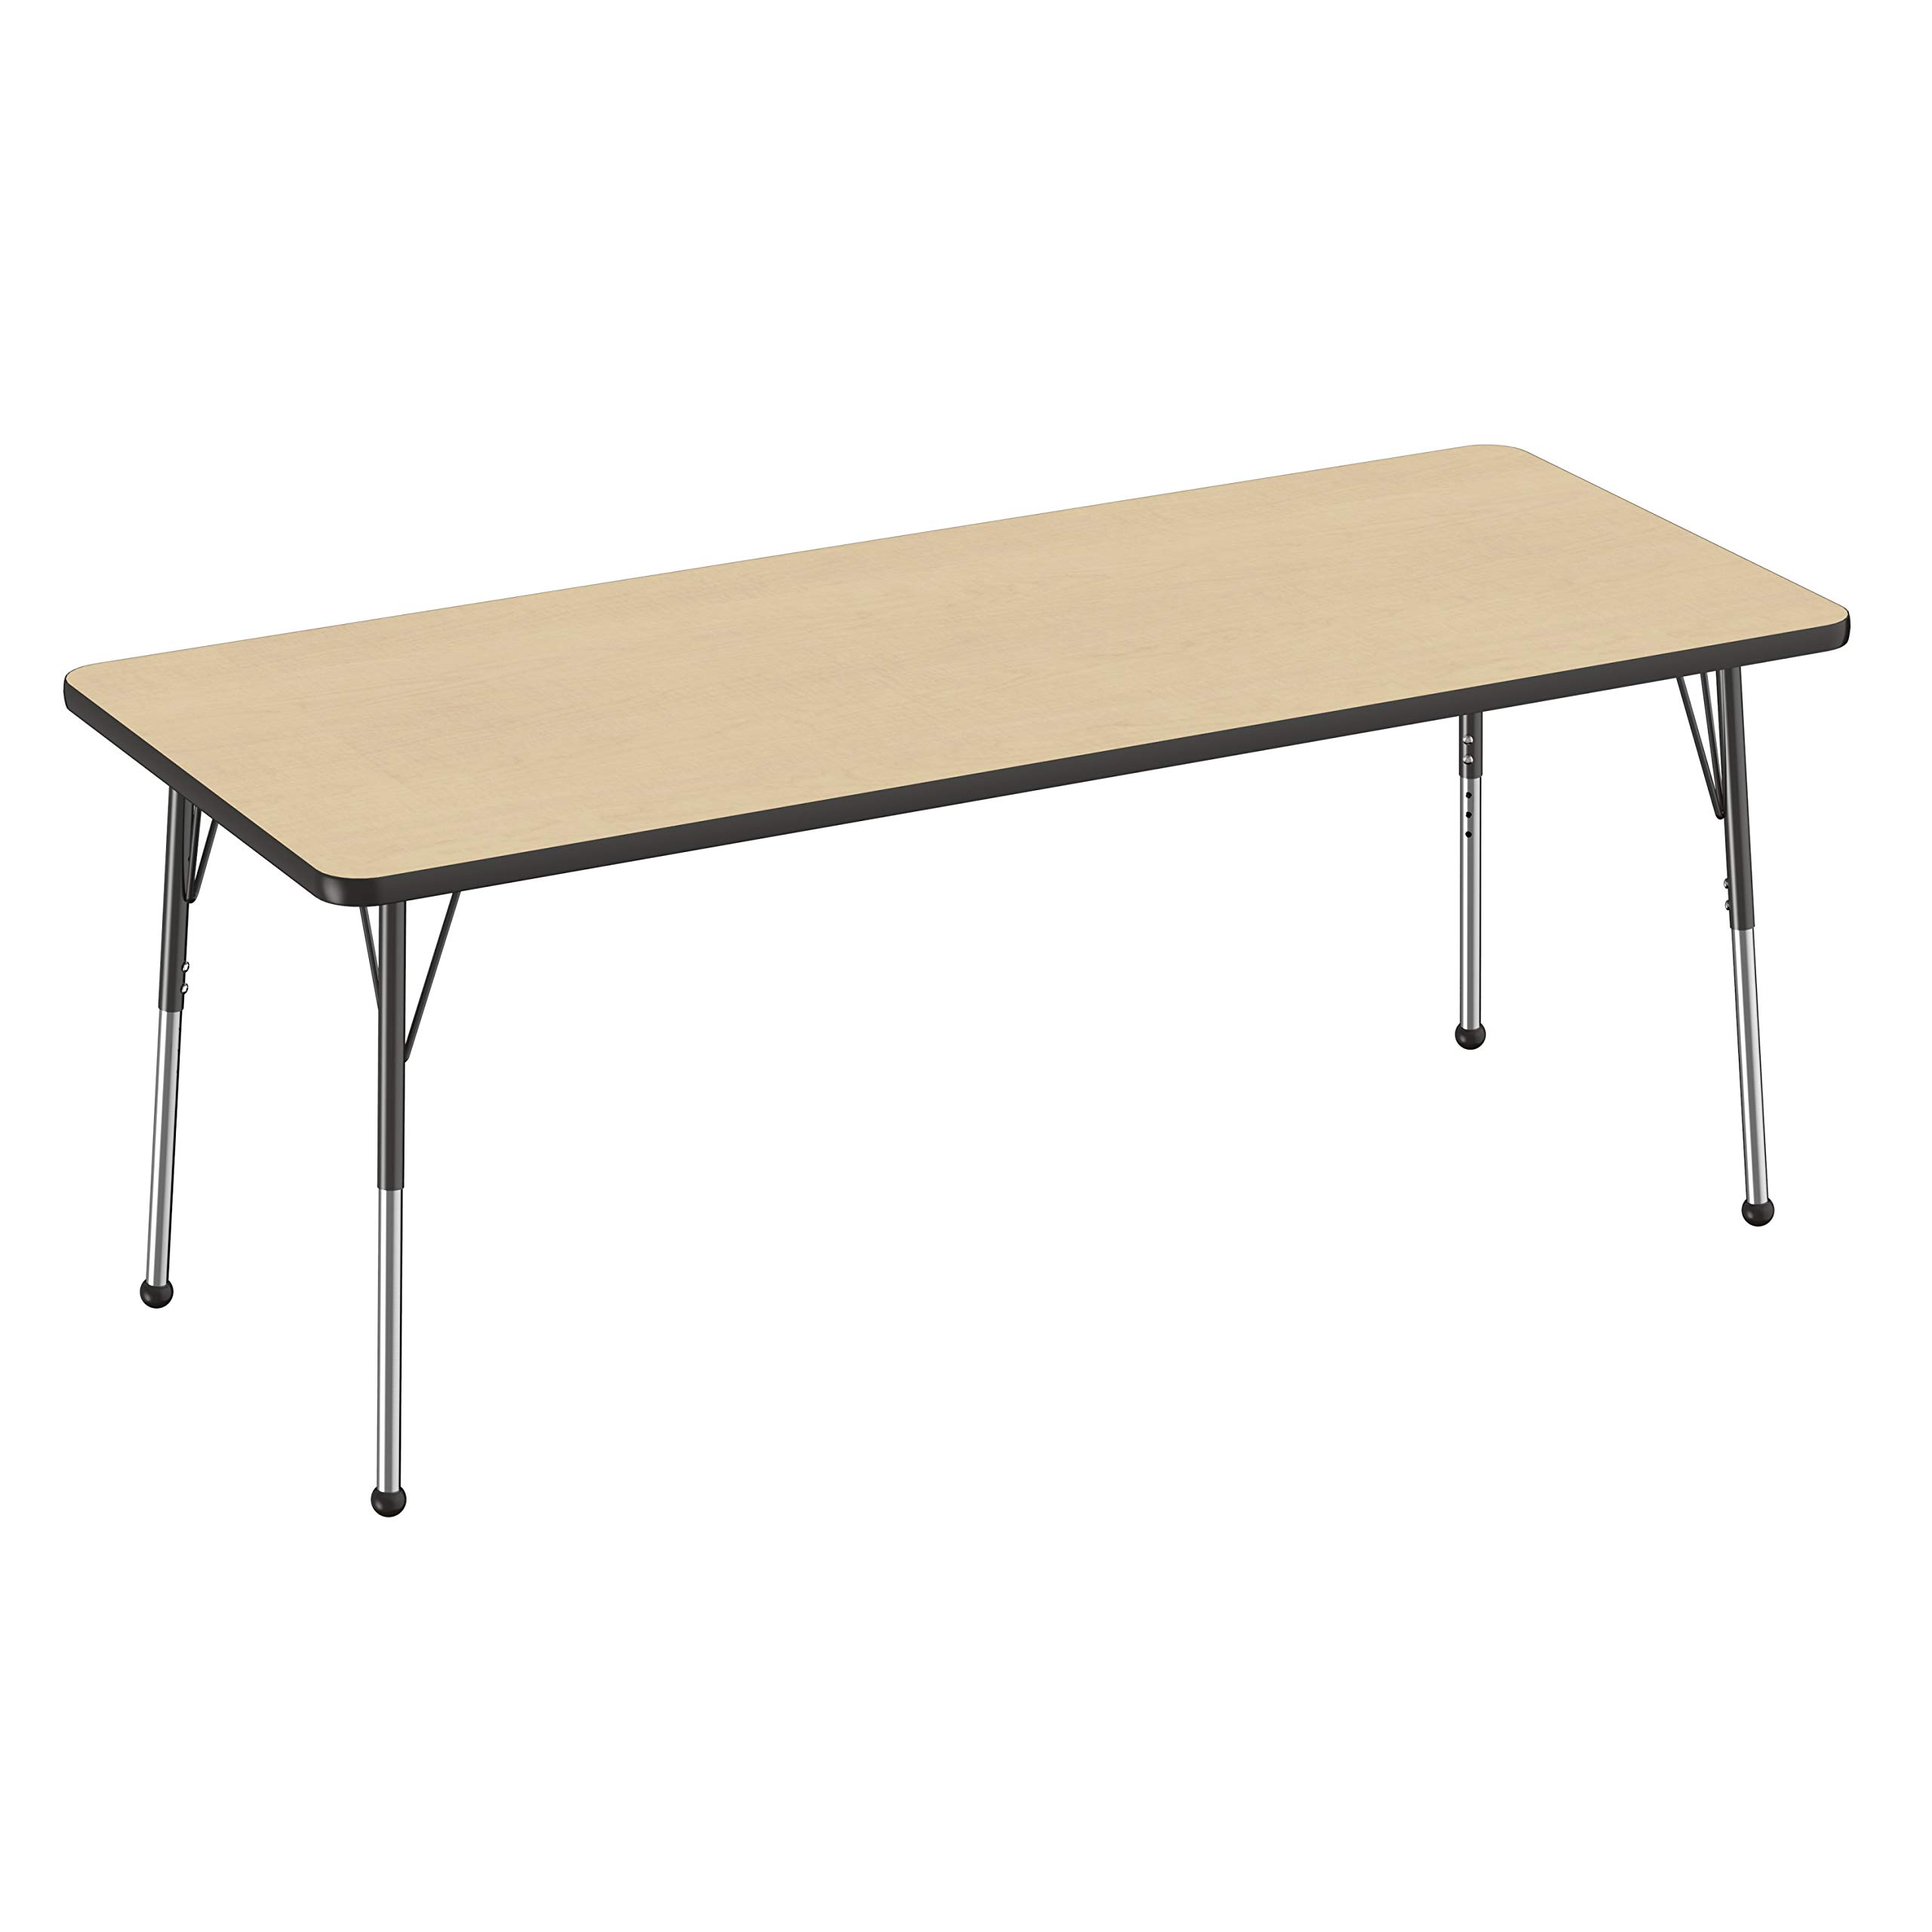 """Factory Direct Partners 30"""" x 72"""" Rectangle T-Mold Kids Classroom Adjustable Activity Table with Standard Leg and Ball Glides - Maple/Black"""